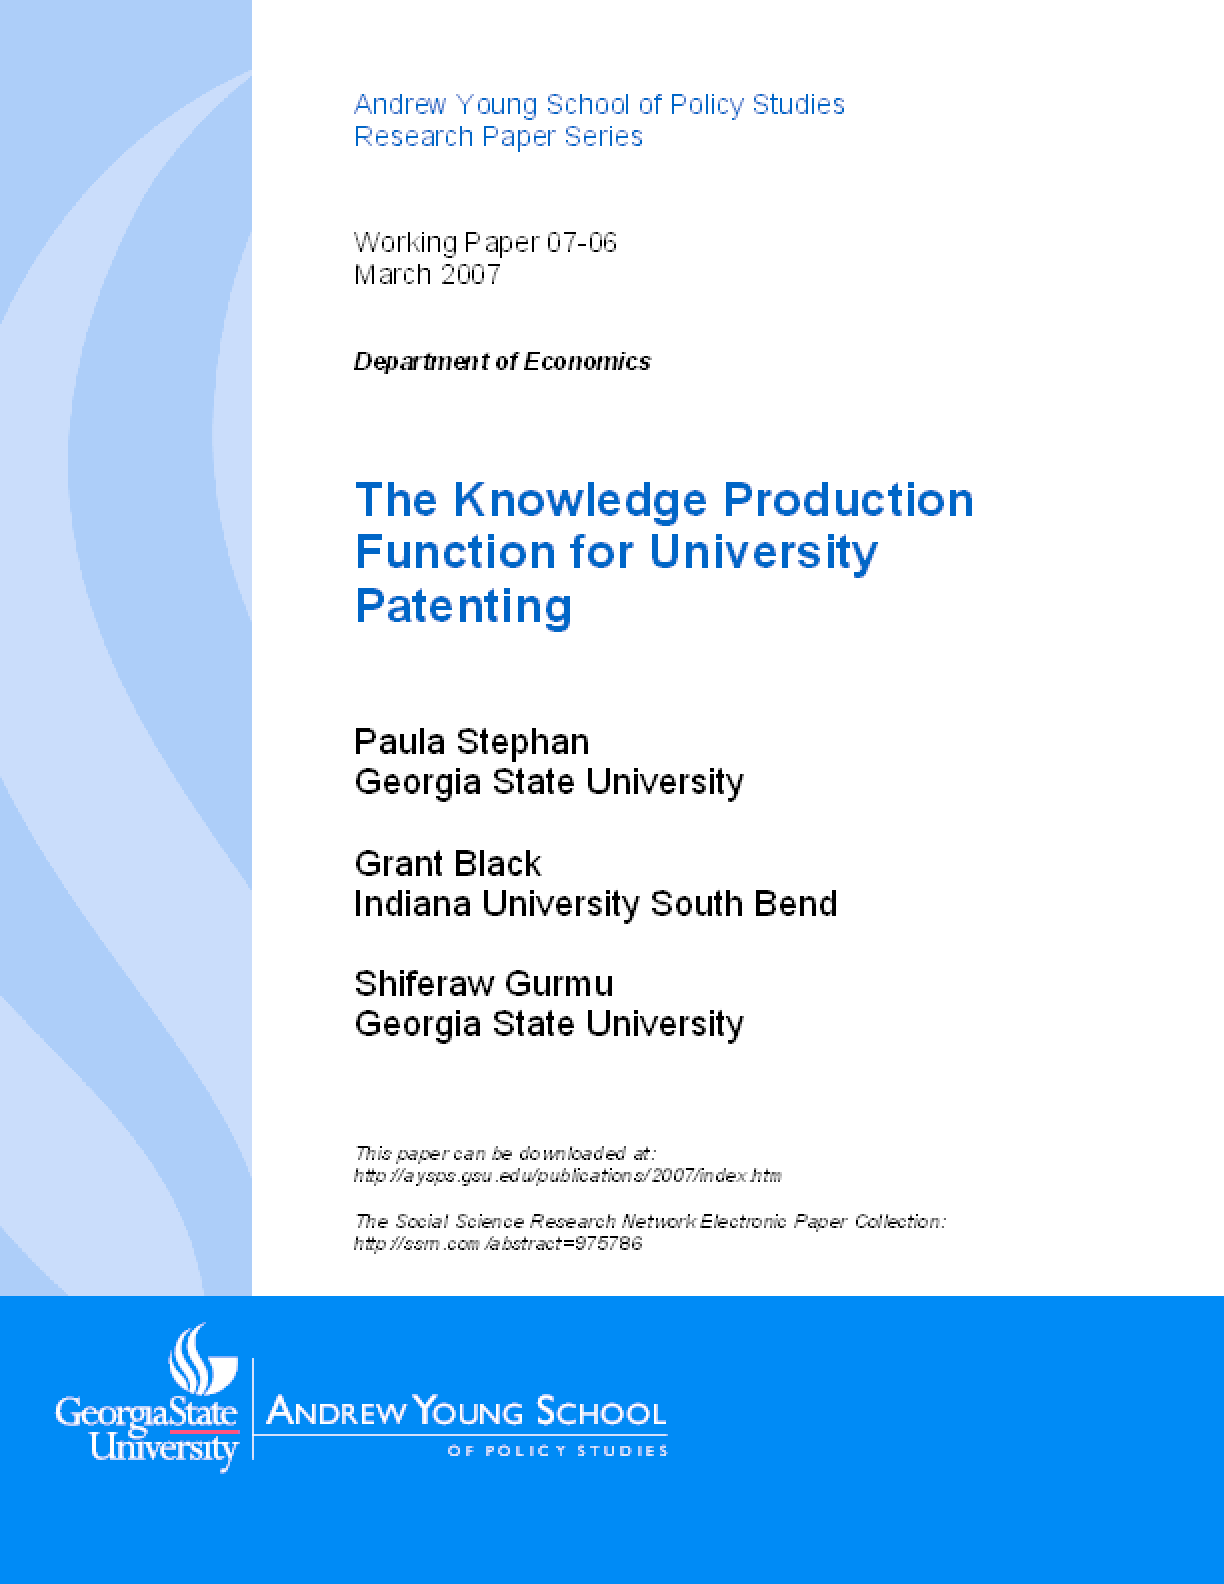 The Knowledge Production Function for University Patenting